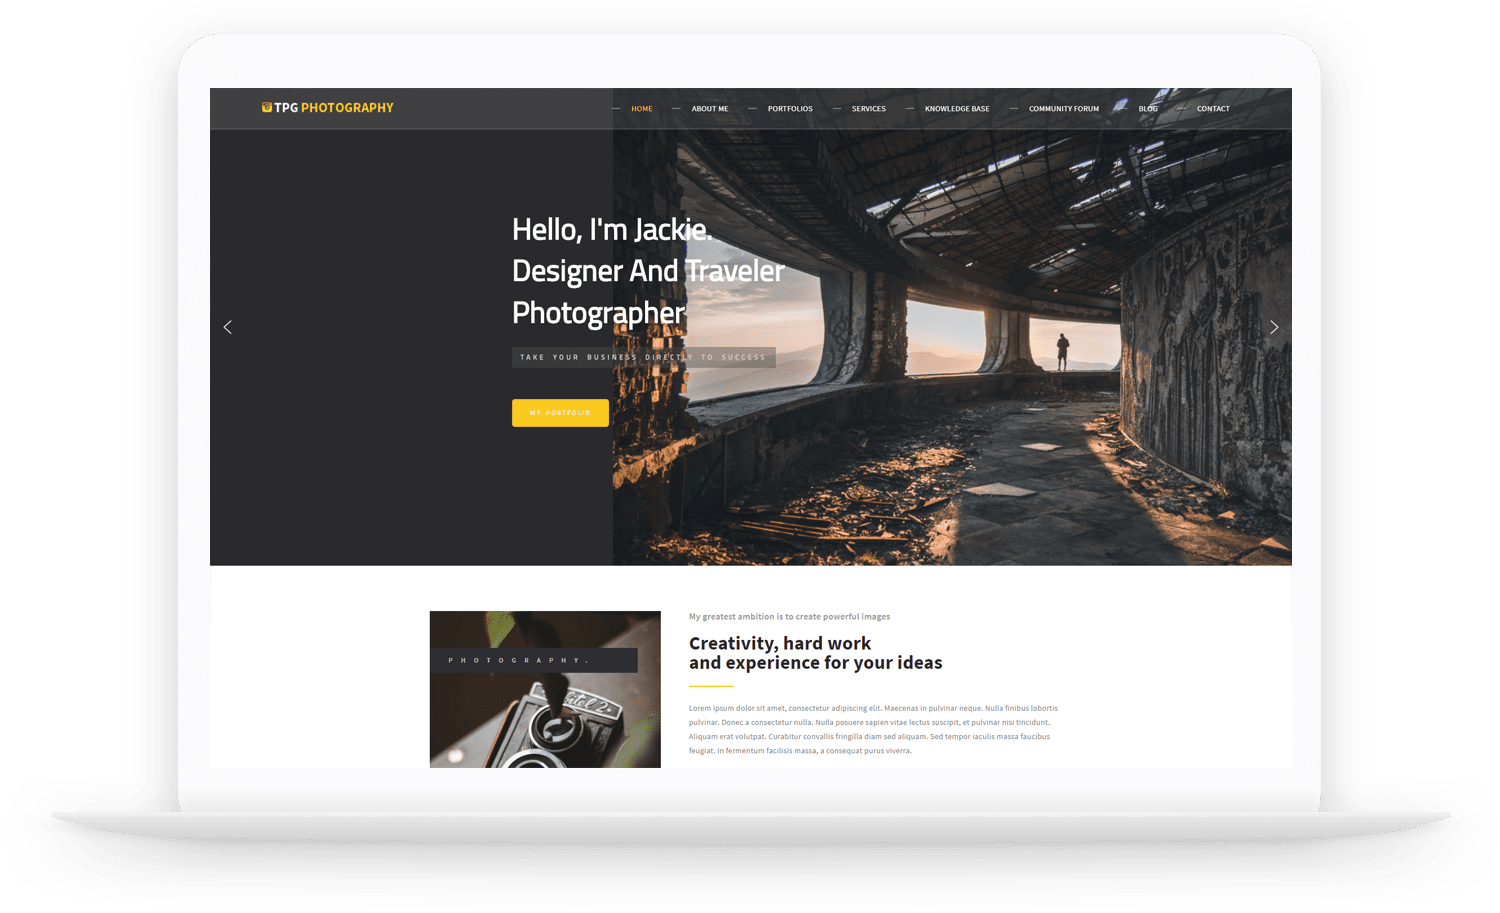 tpg-photography-free-responsive-wordpress-theme